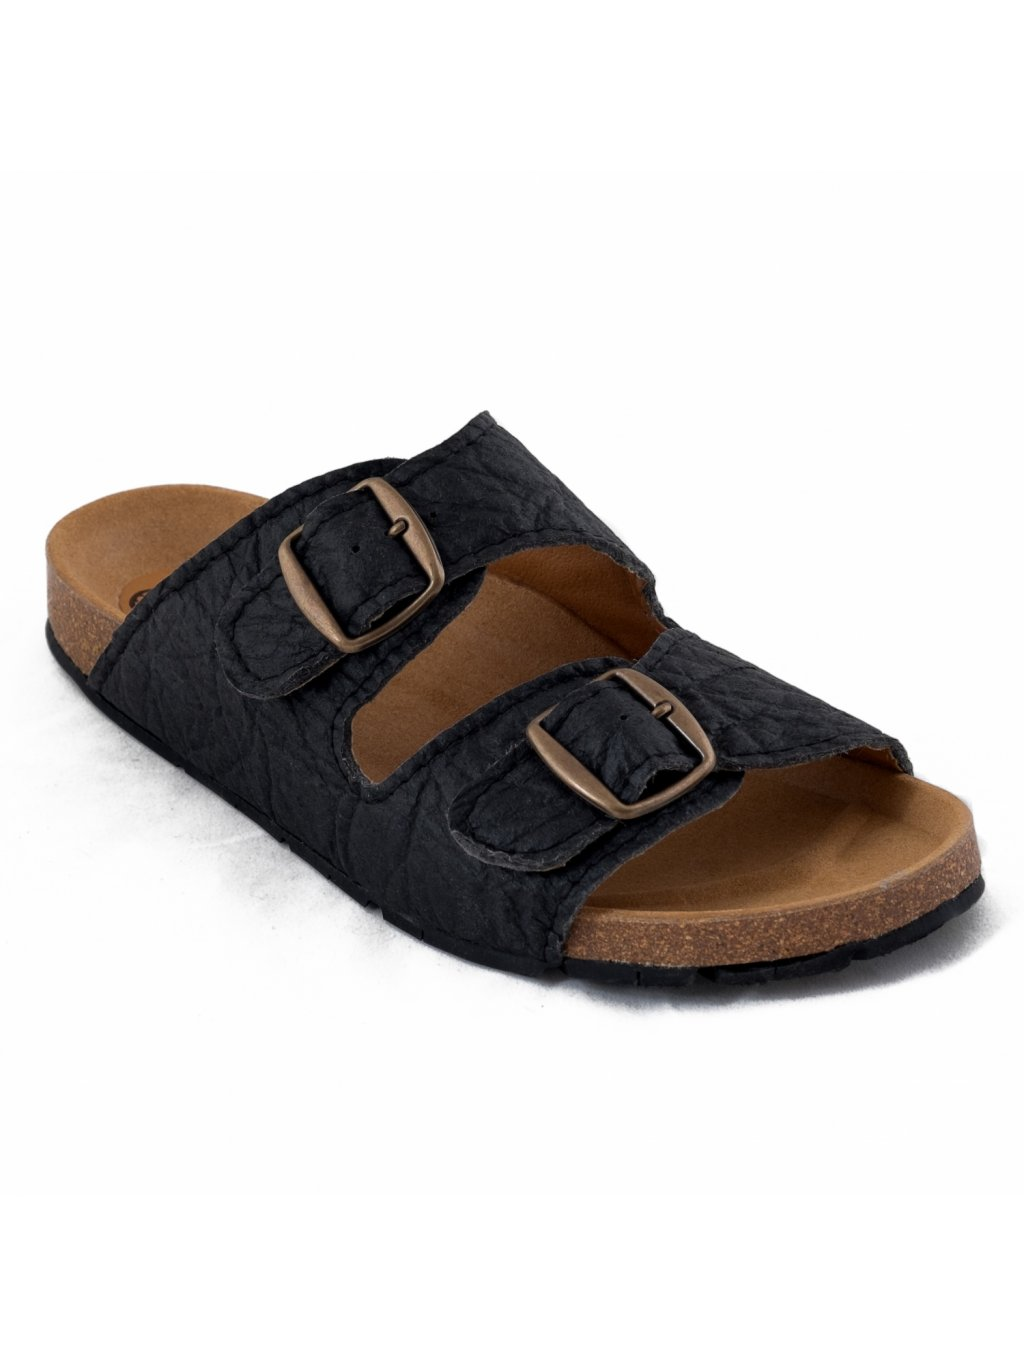 pinatex sandals men 2